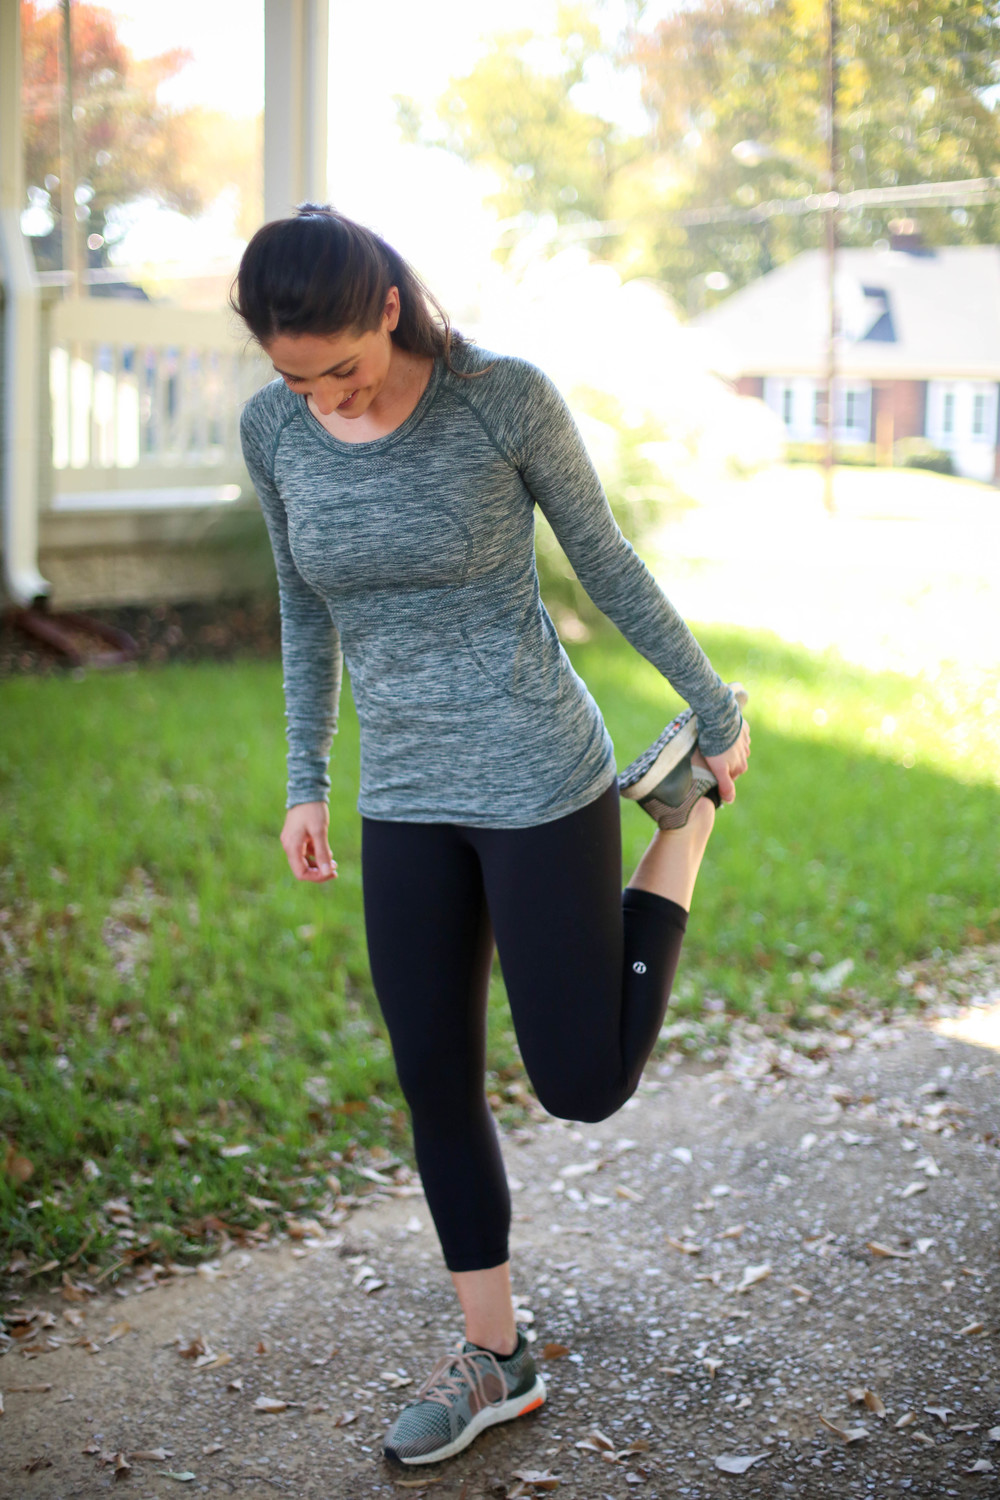 7 Stretches to Alleviate Joint Pain